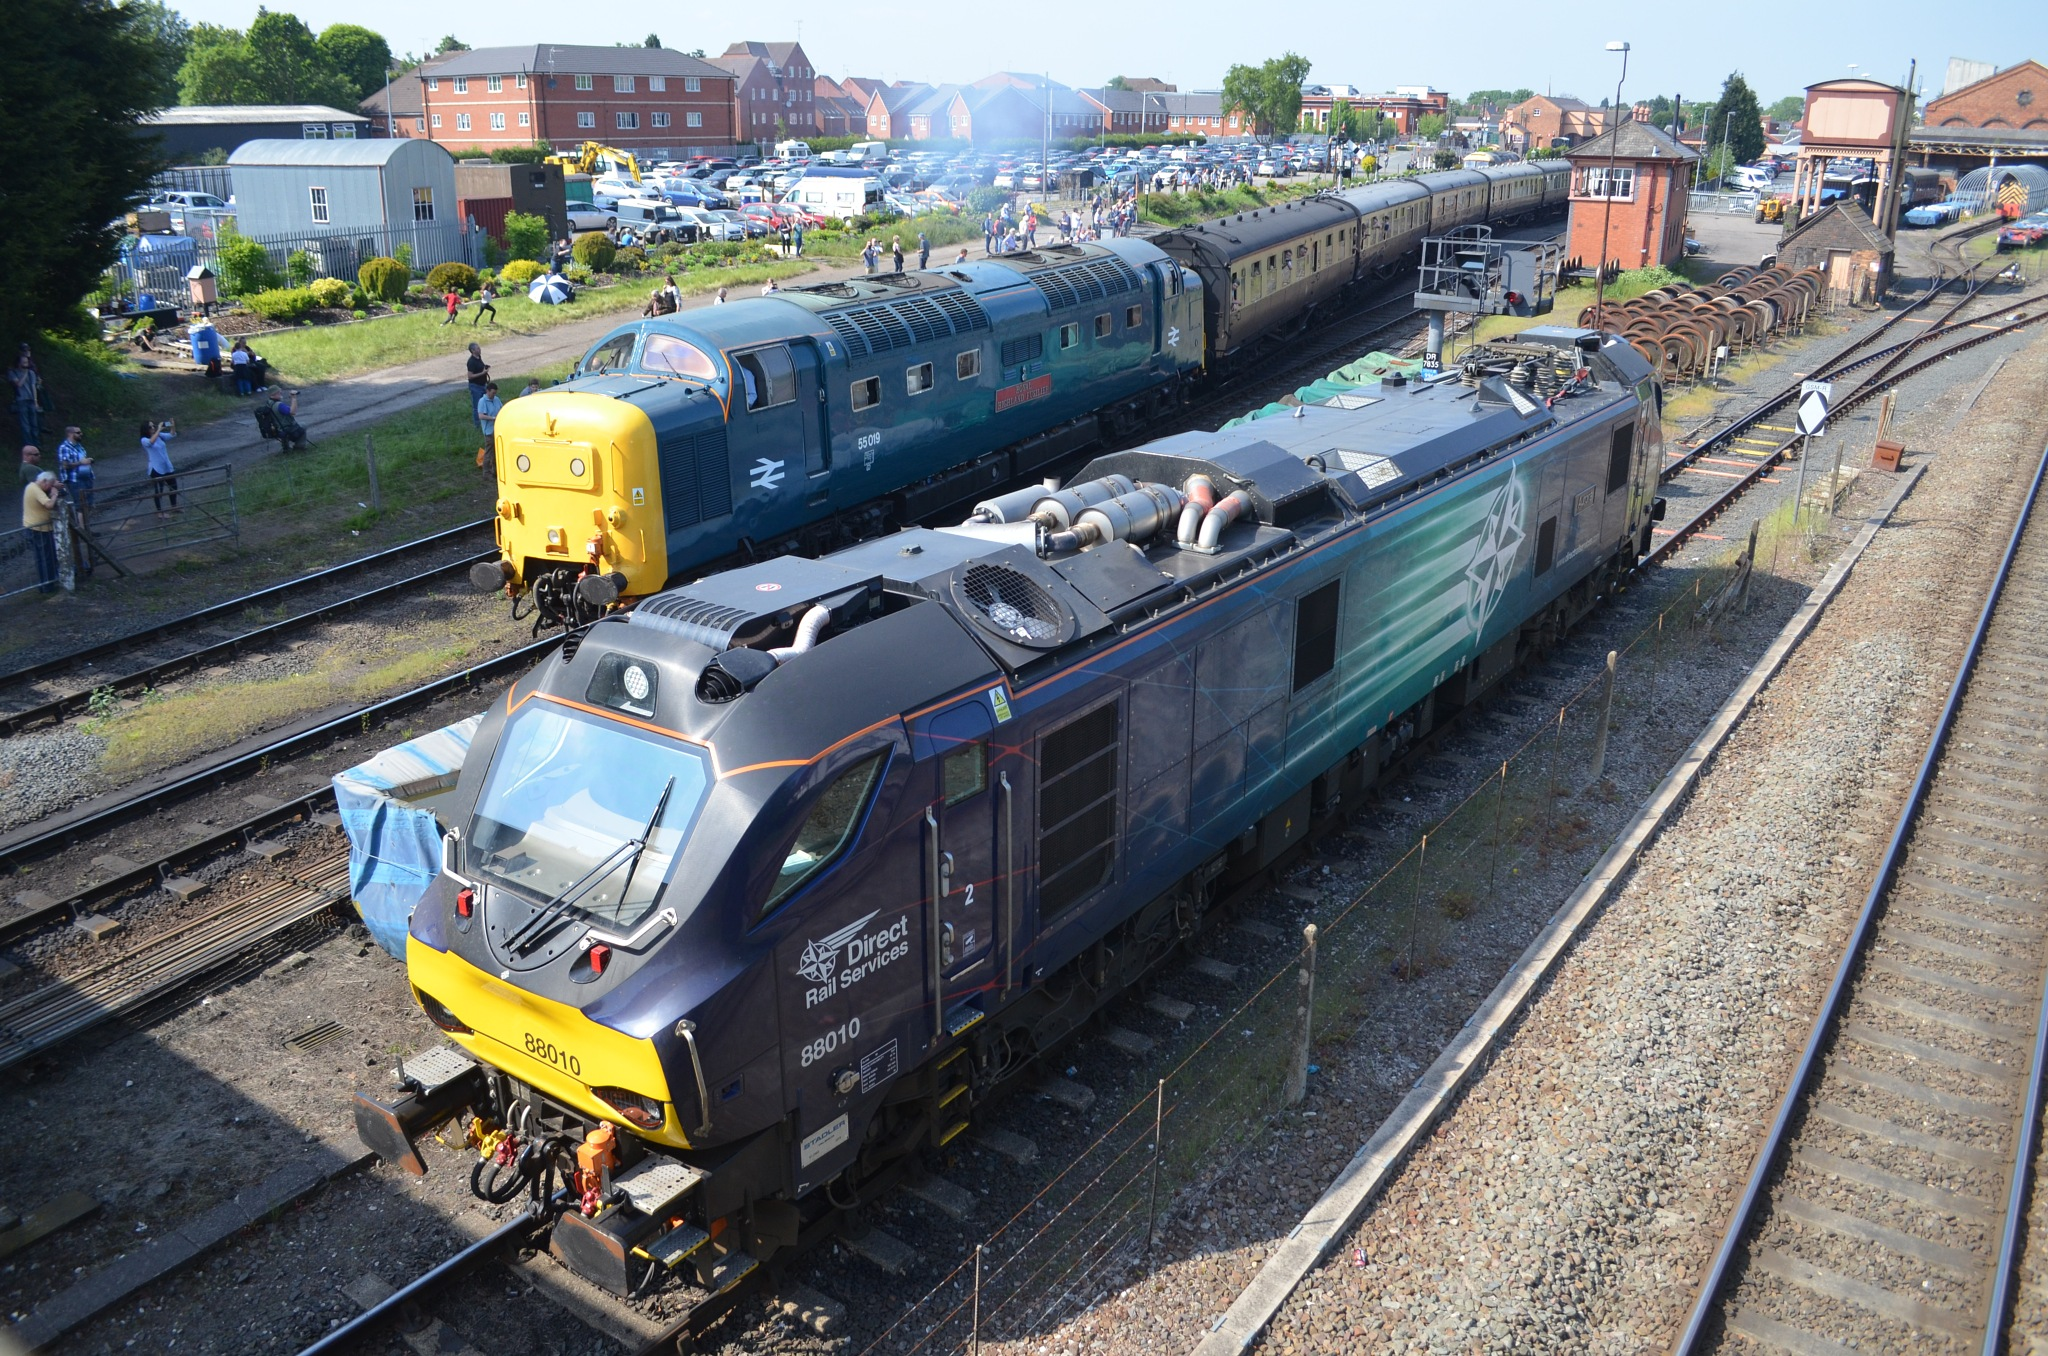 A BUSY SCENE by adrian.williams.58323